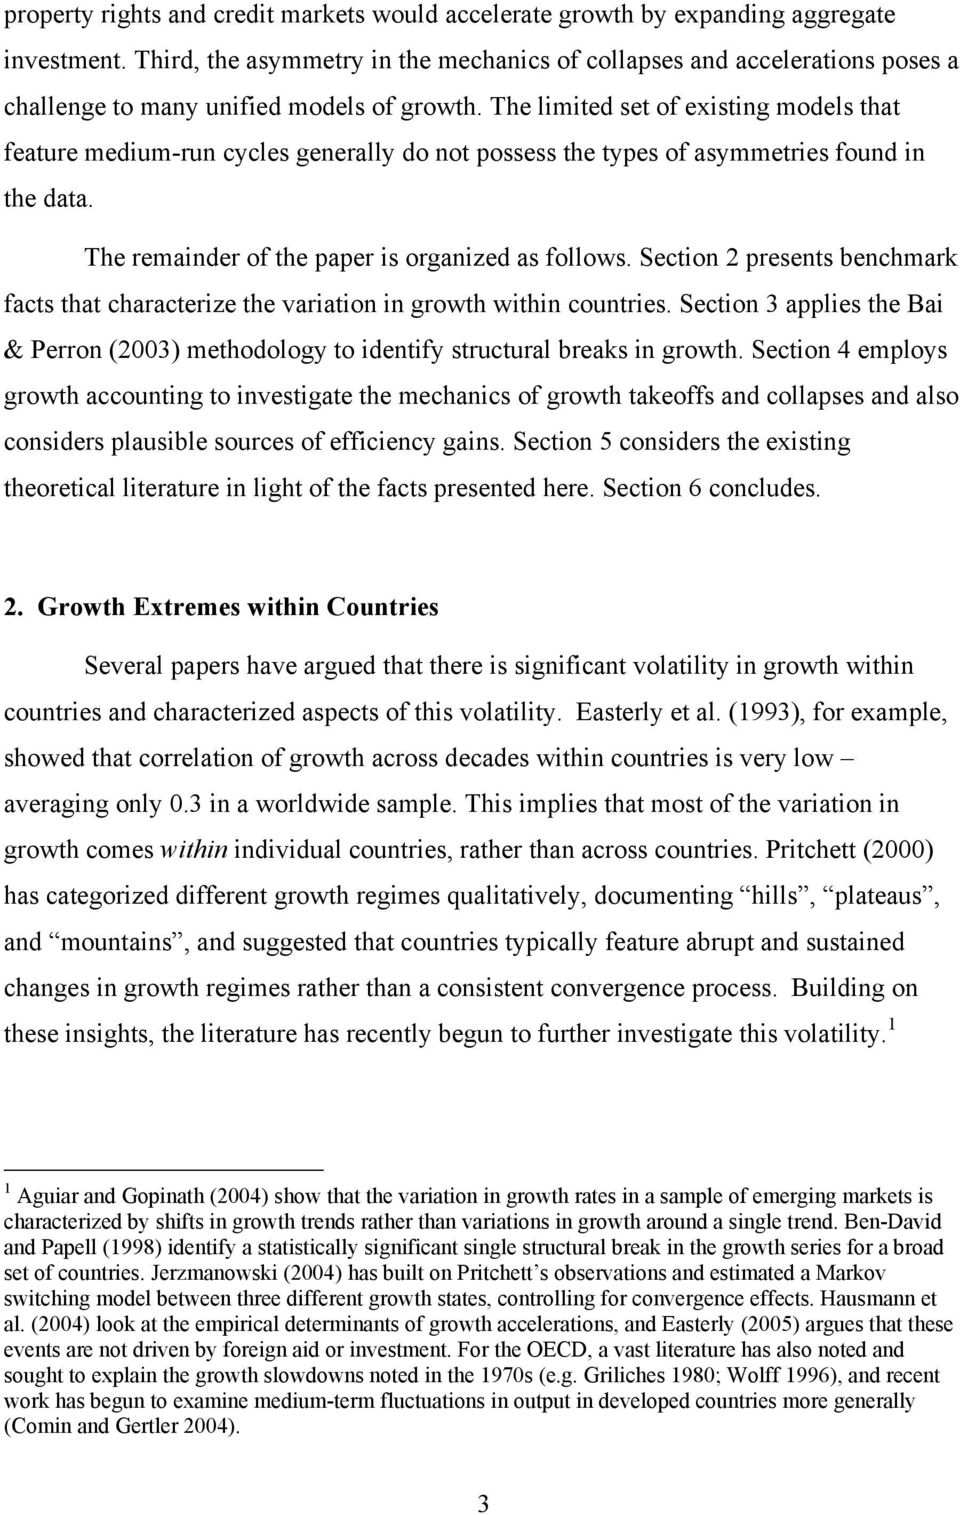 The limited set of existing models that feature medium-run cycles generally do not possess the types of asymmetries found in the data. The remainder of the paper is organized as follows.